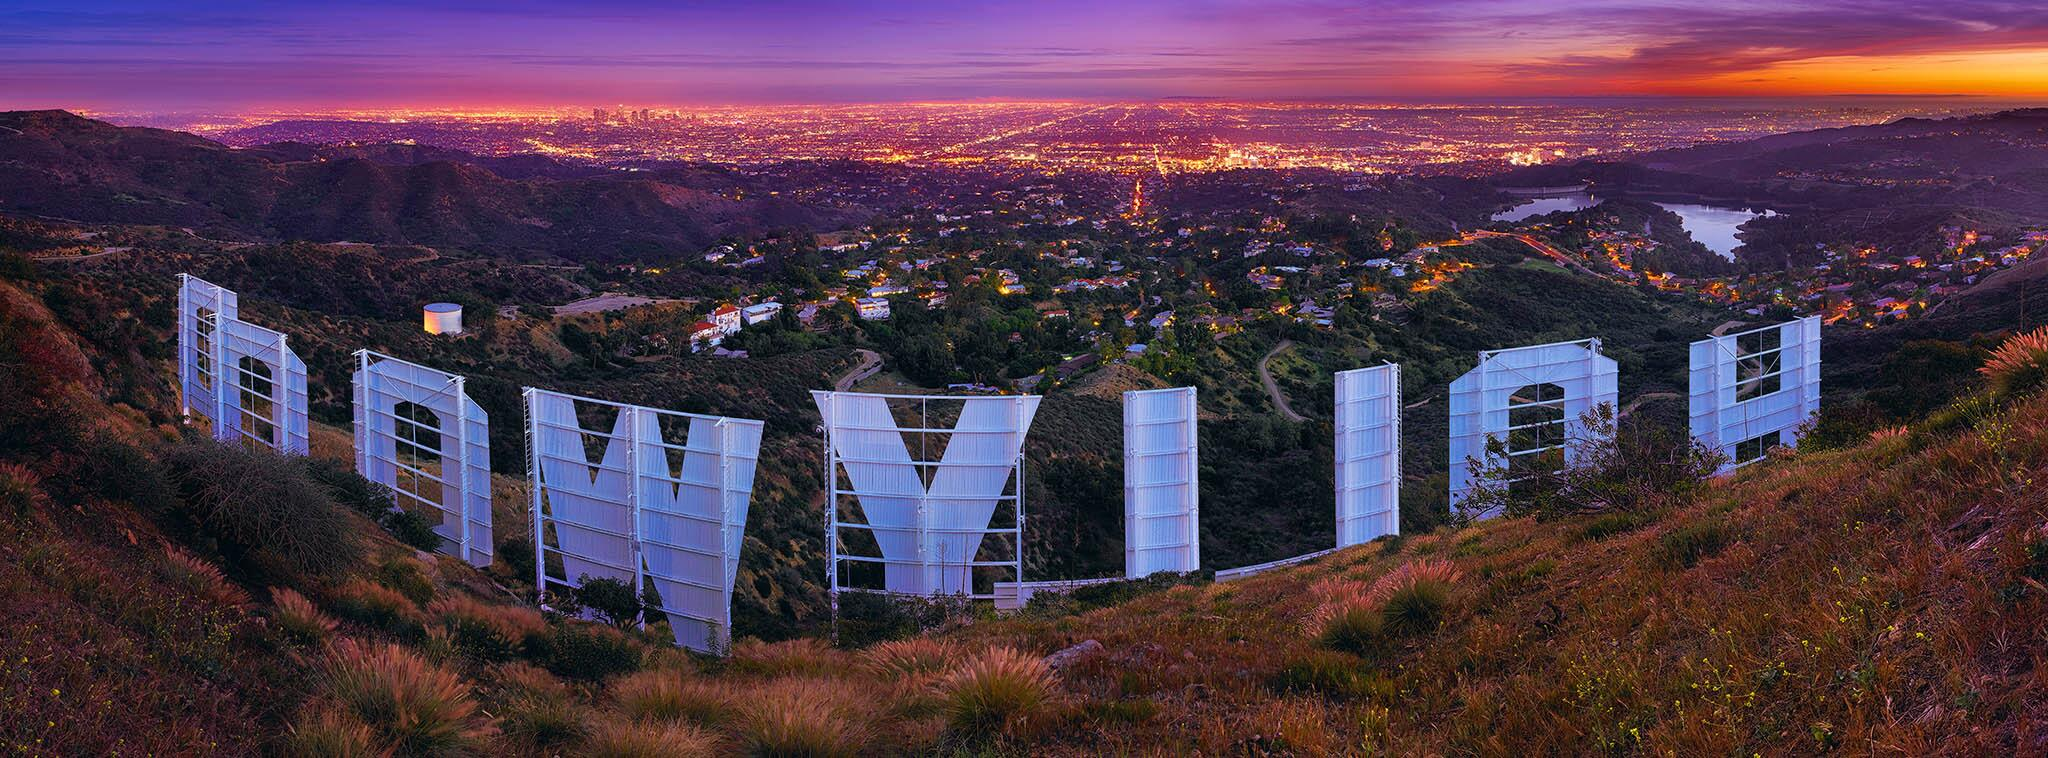 """Peter Lik on Twitter: """"""""Hollywood Nights"""" - My goal was to ..."""